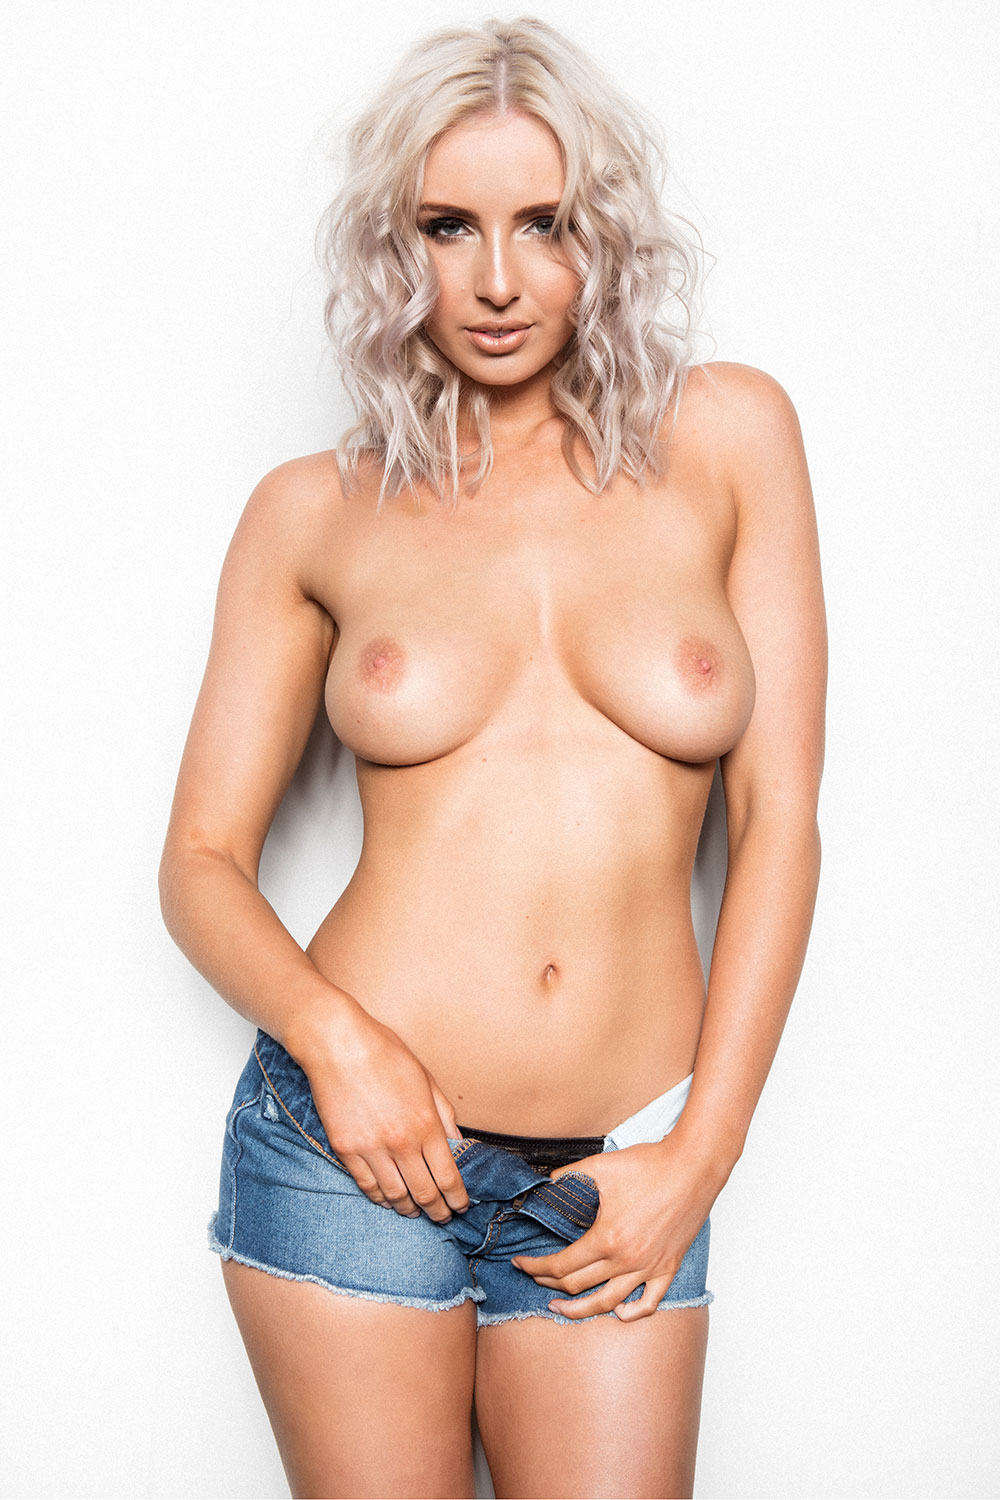 Lissy-Cunningham-Topless-Page3-3